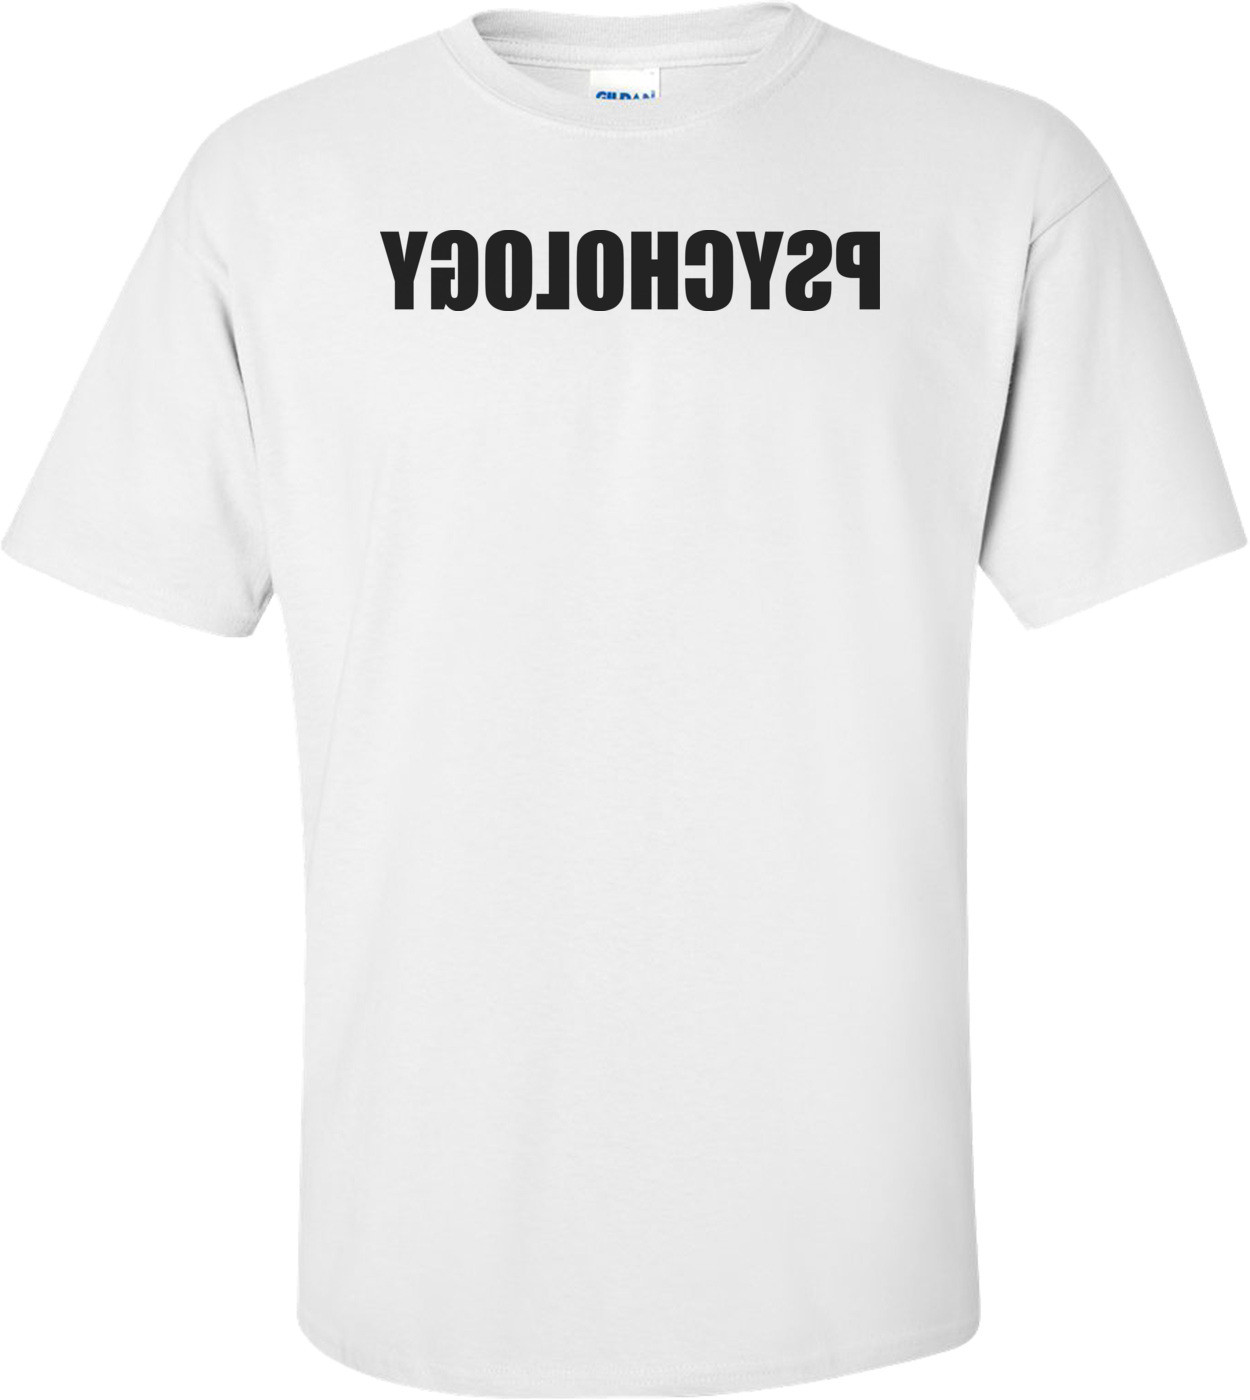 Reverse Psychology Shirt